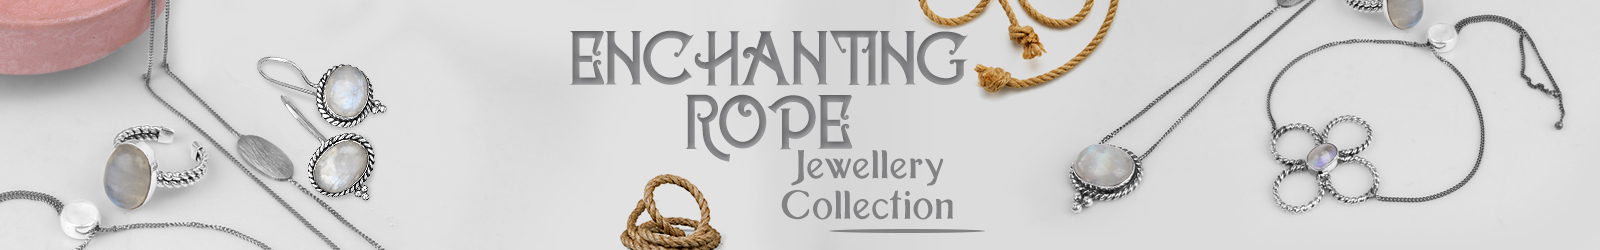 Handcrafted Twisted Silver Gemstone Jewelry Manufacturer in Jaipur